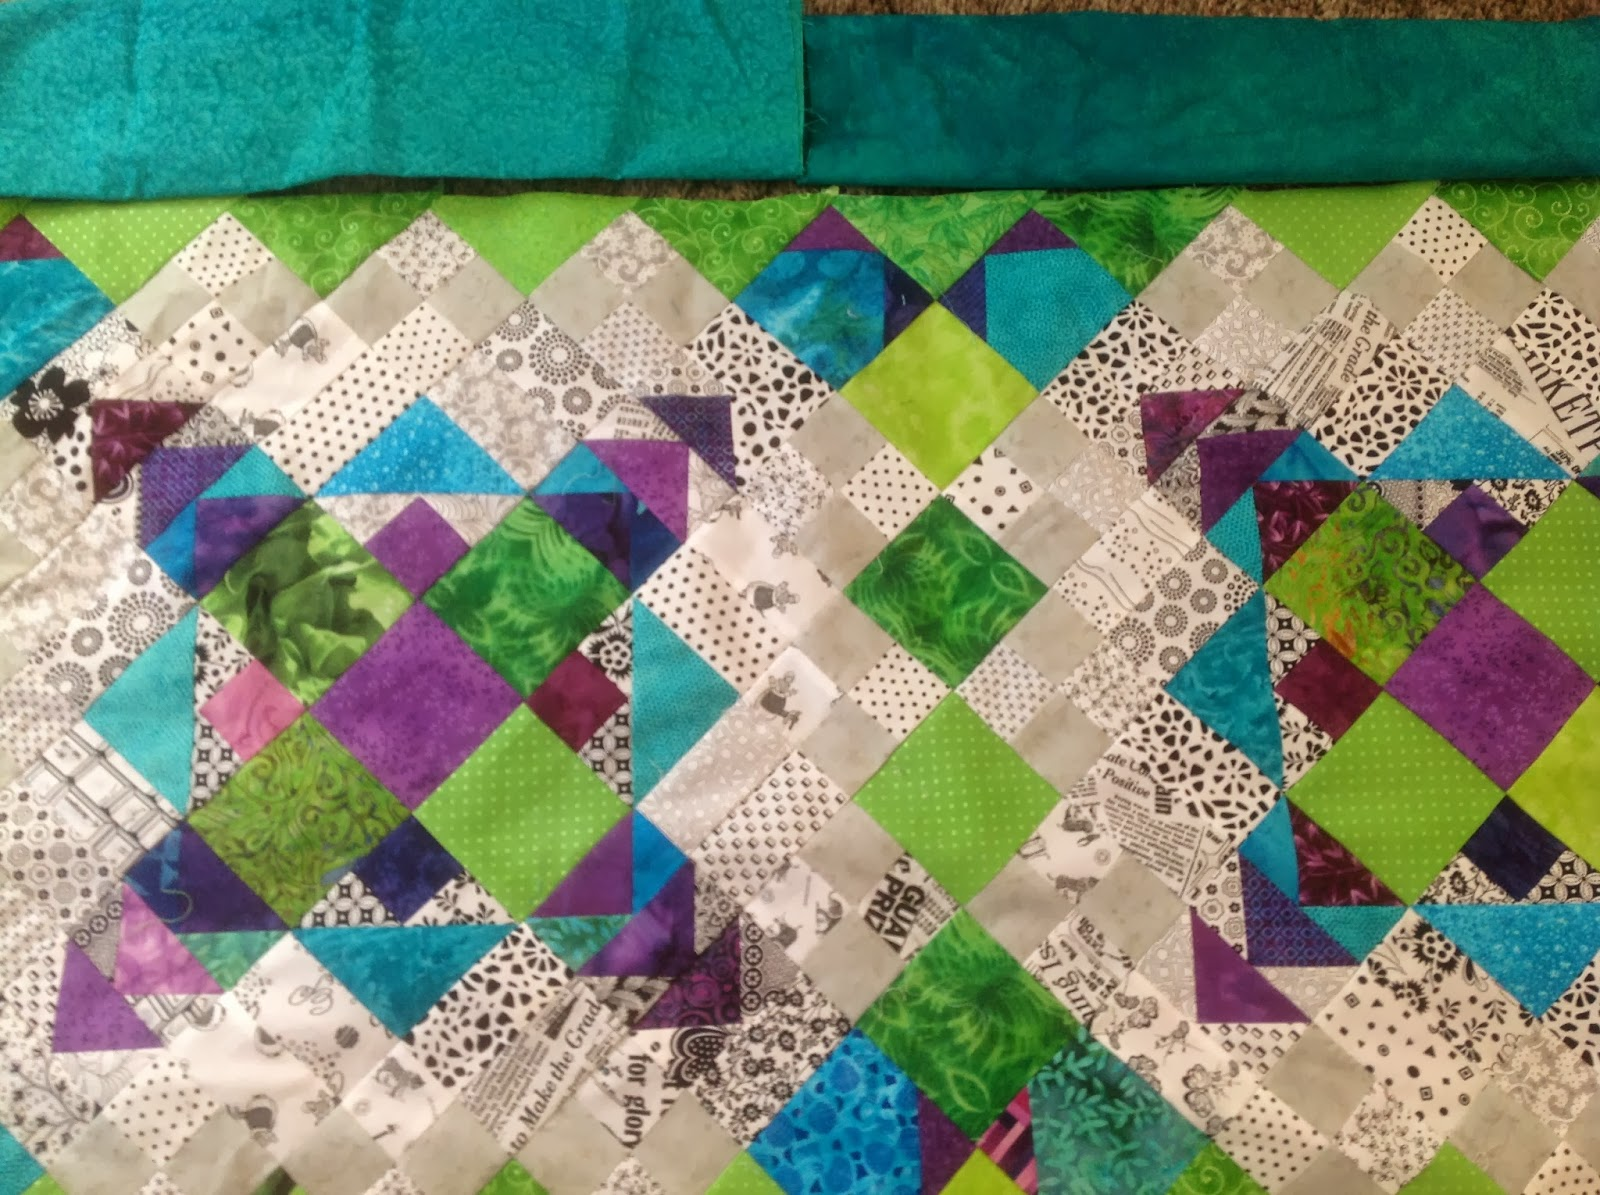 Timber hill threads borders and a quick quilt do you visit the missouri star quilt company website are you on their email list i just recently joined their email listing baditri Images